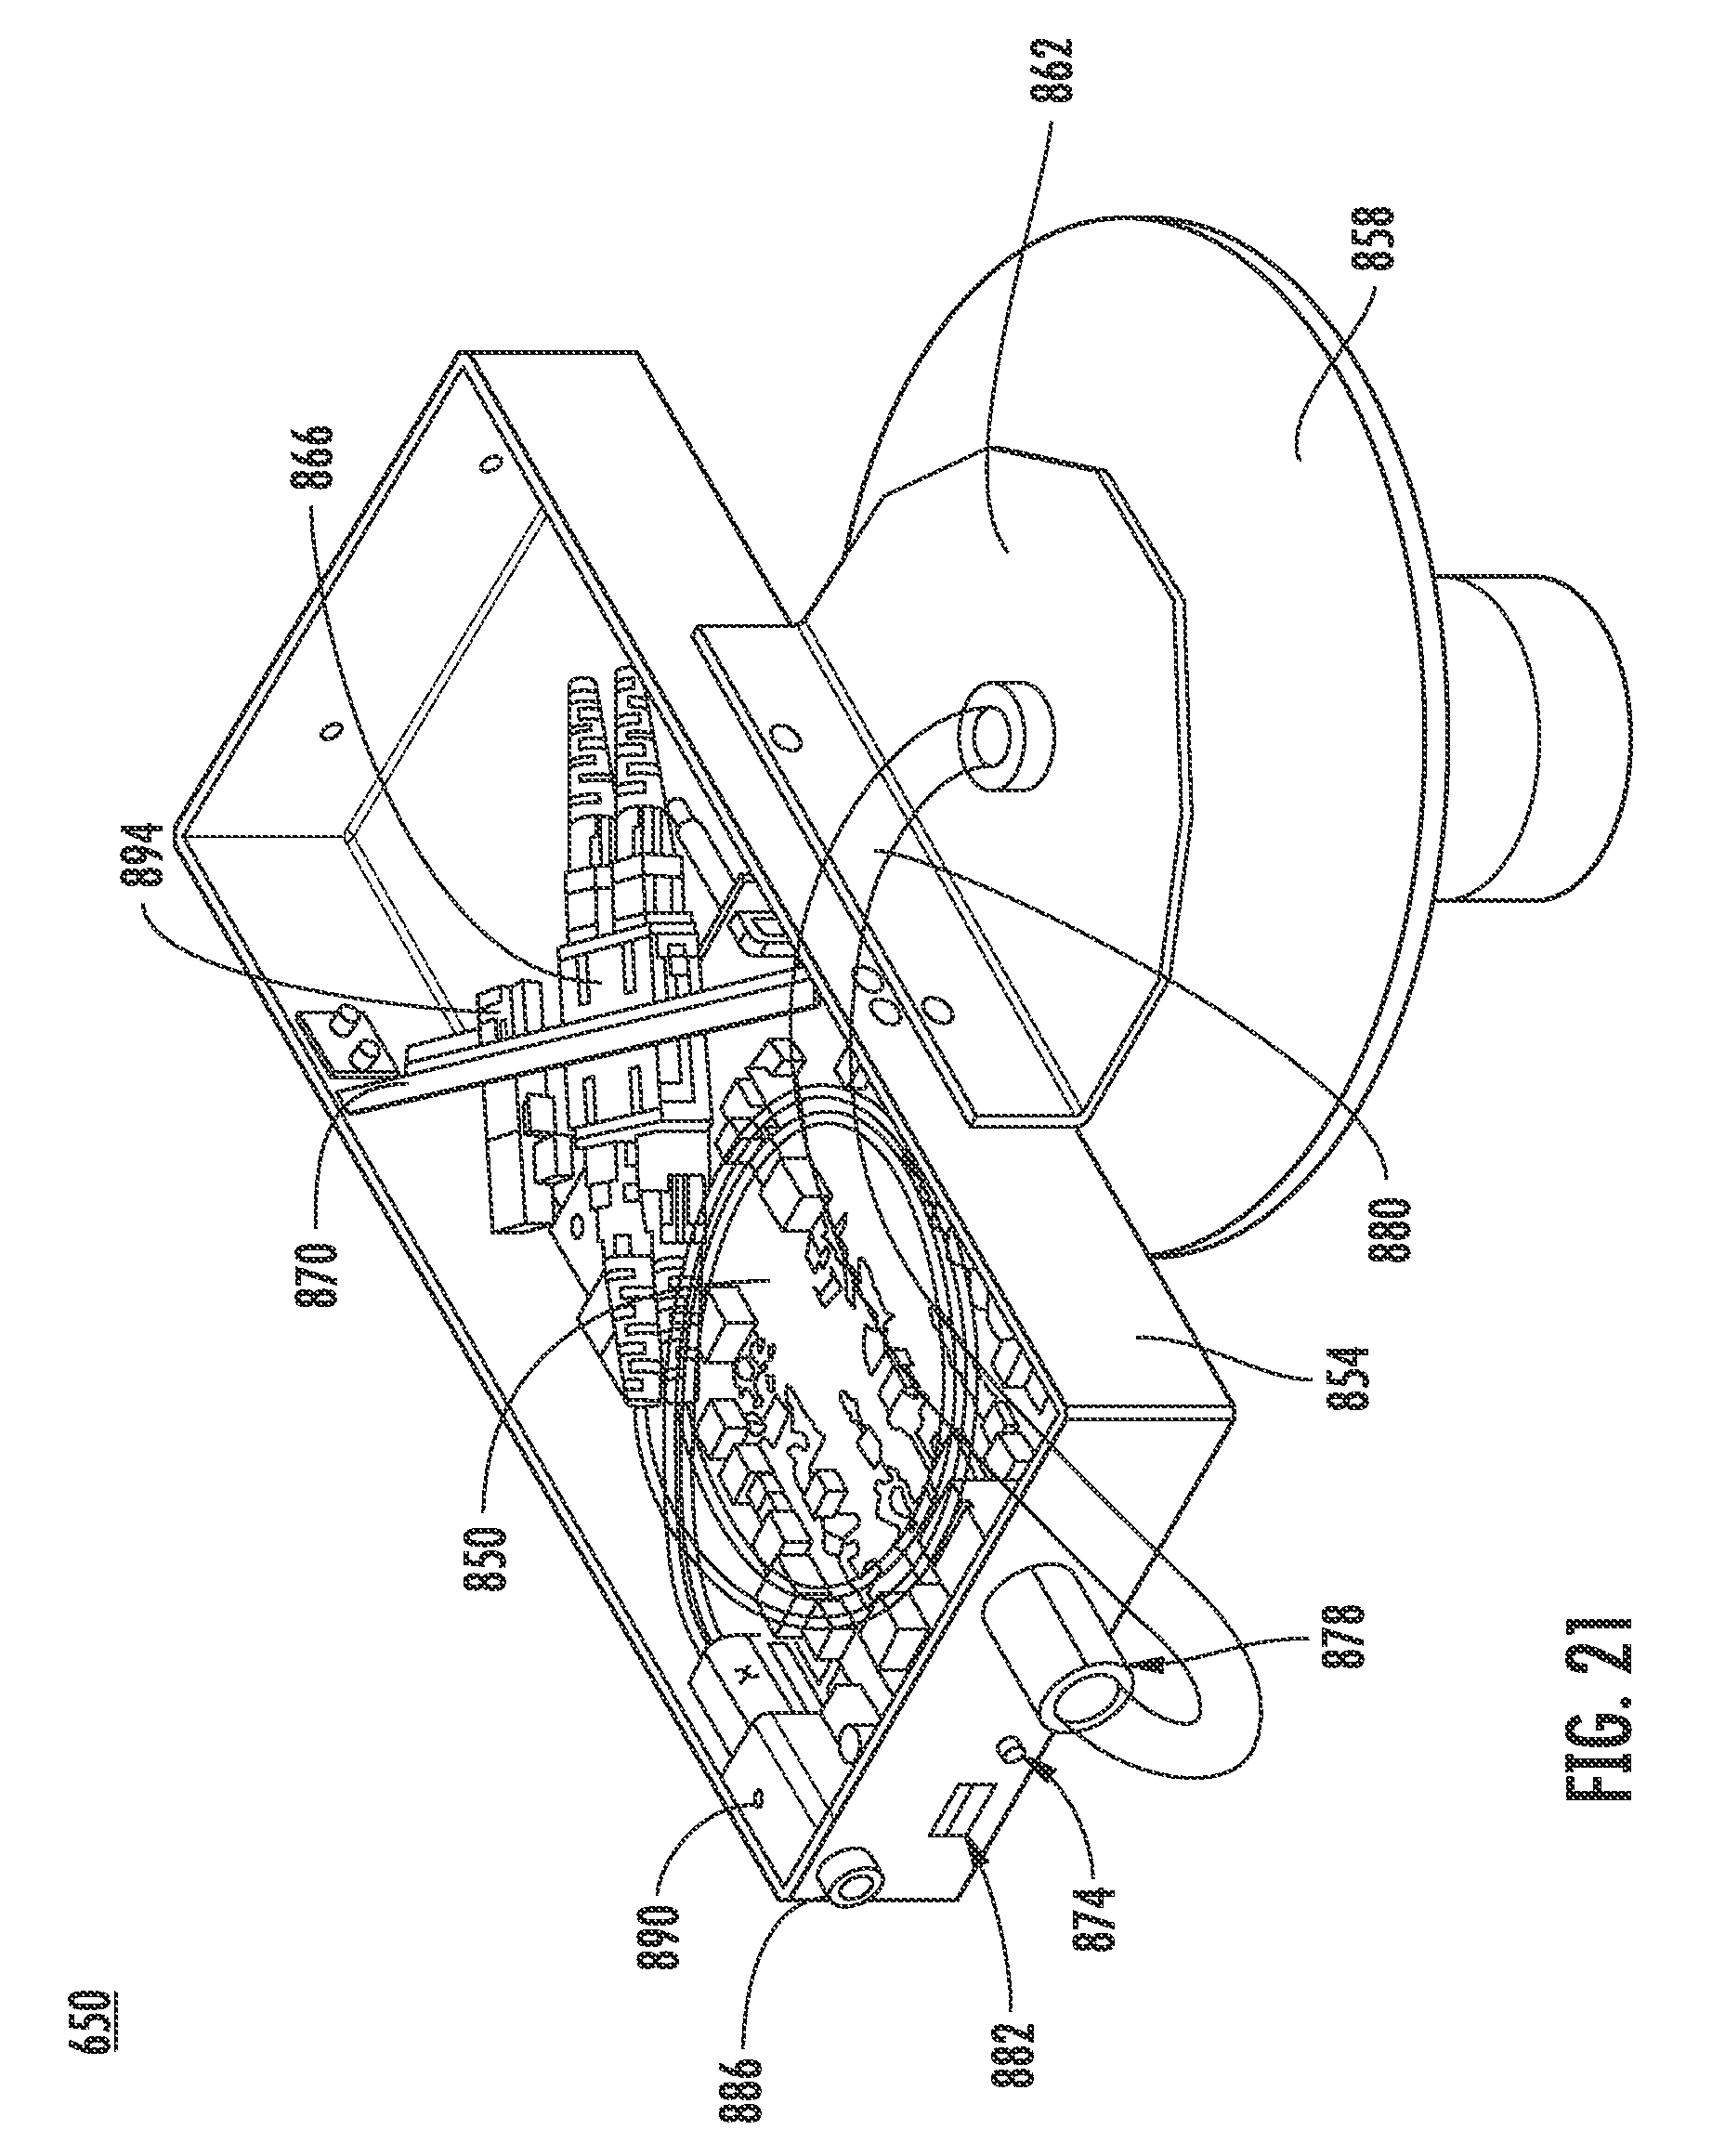 patent us 9 112 611 b2 CloudStack Architecture Diagram patent images